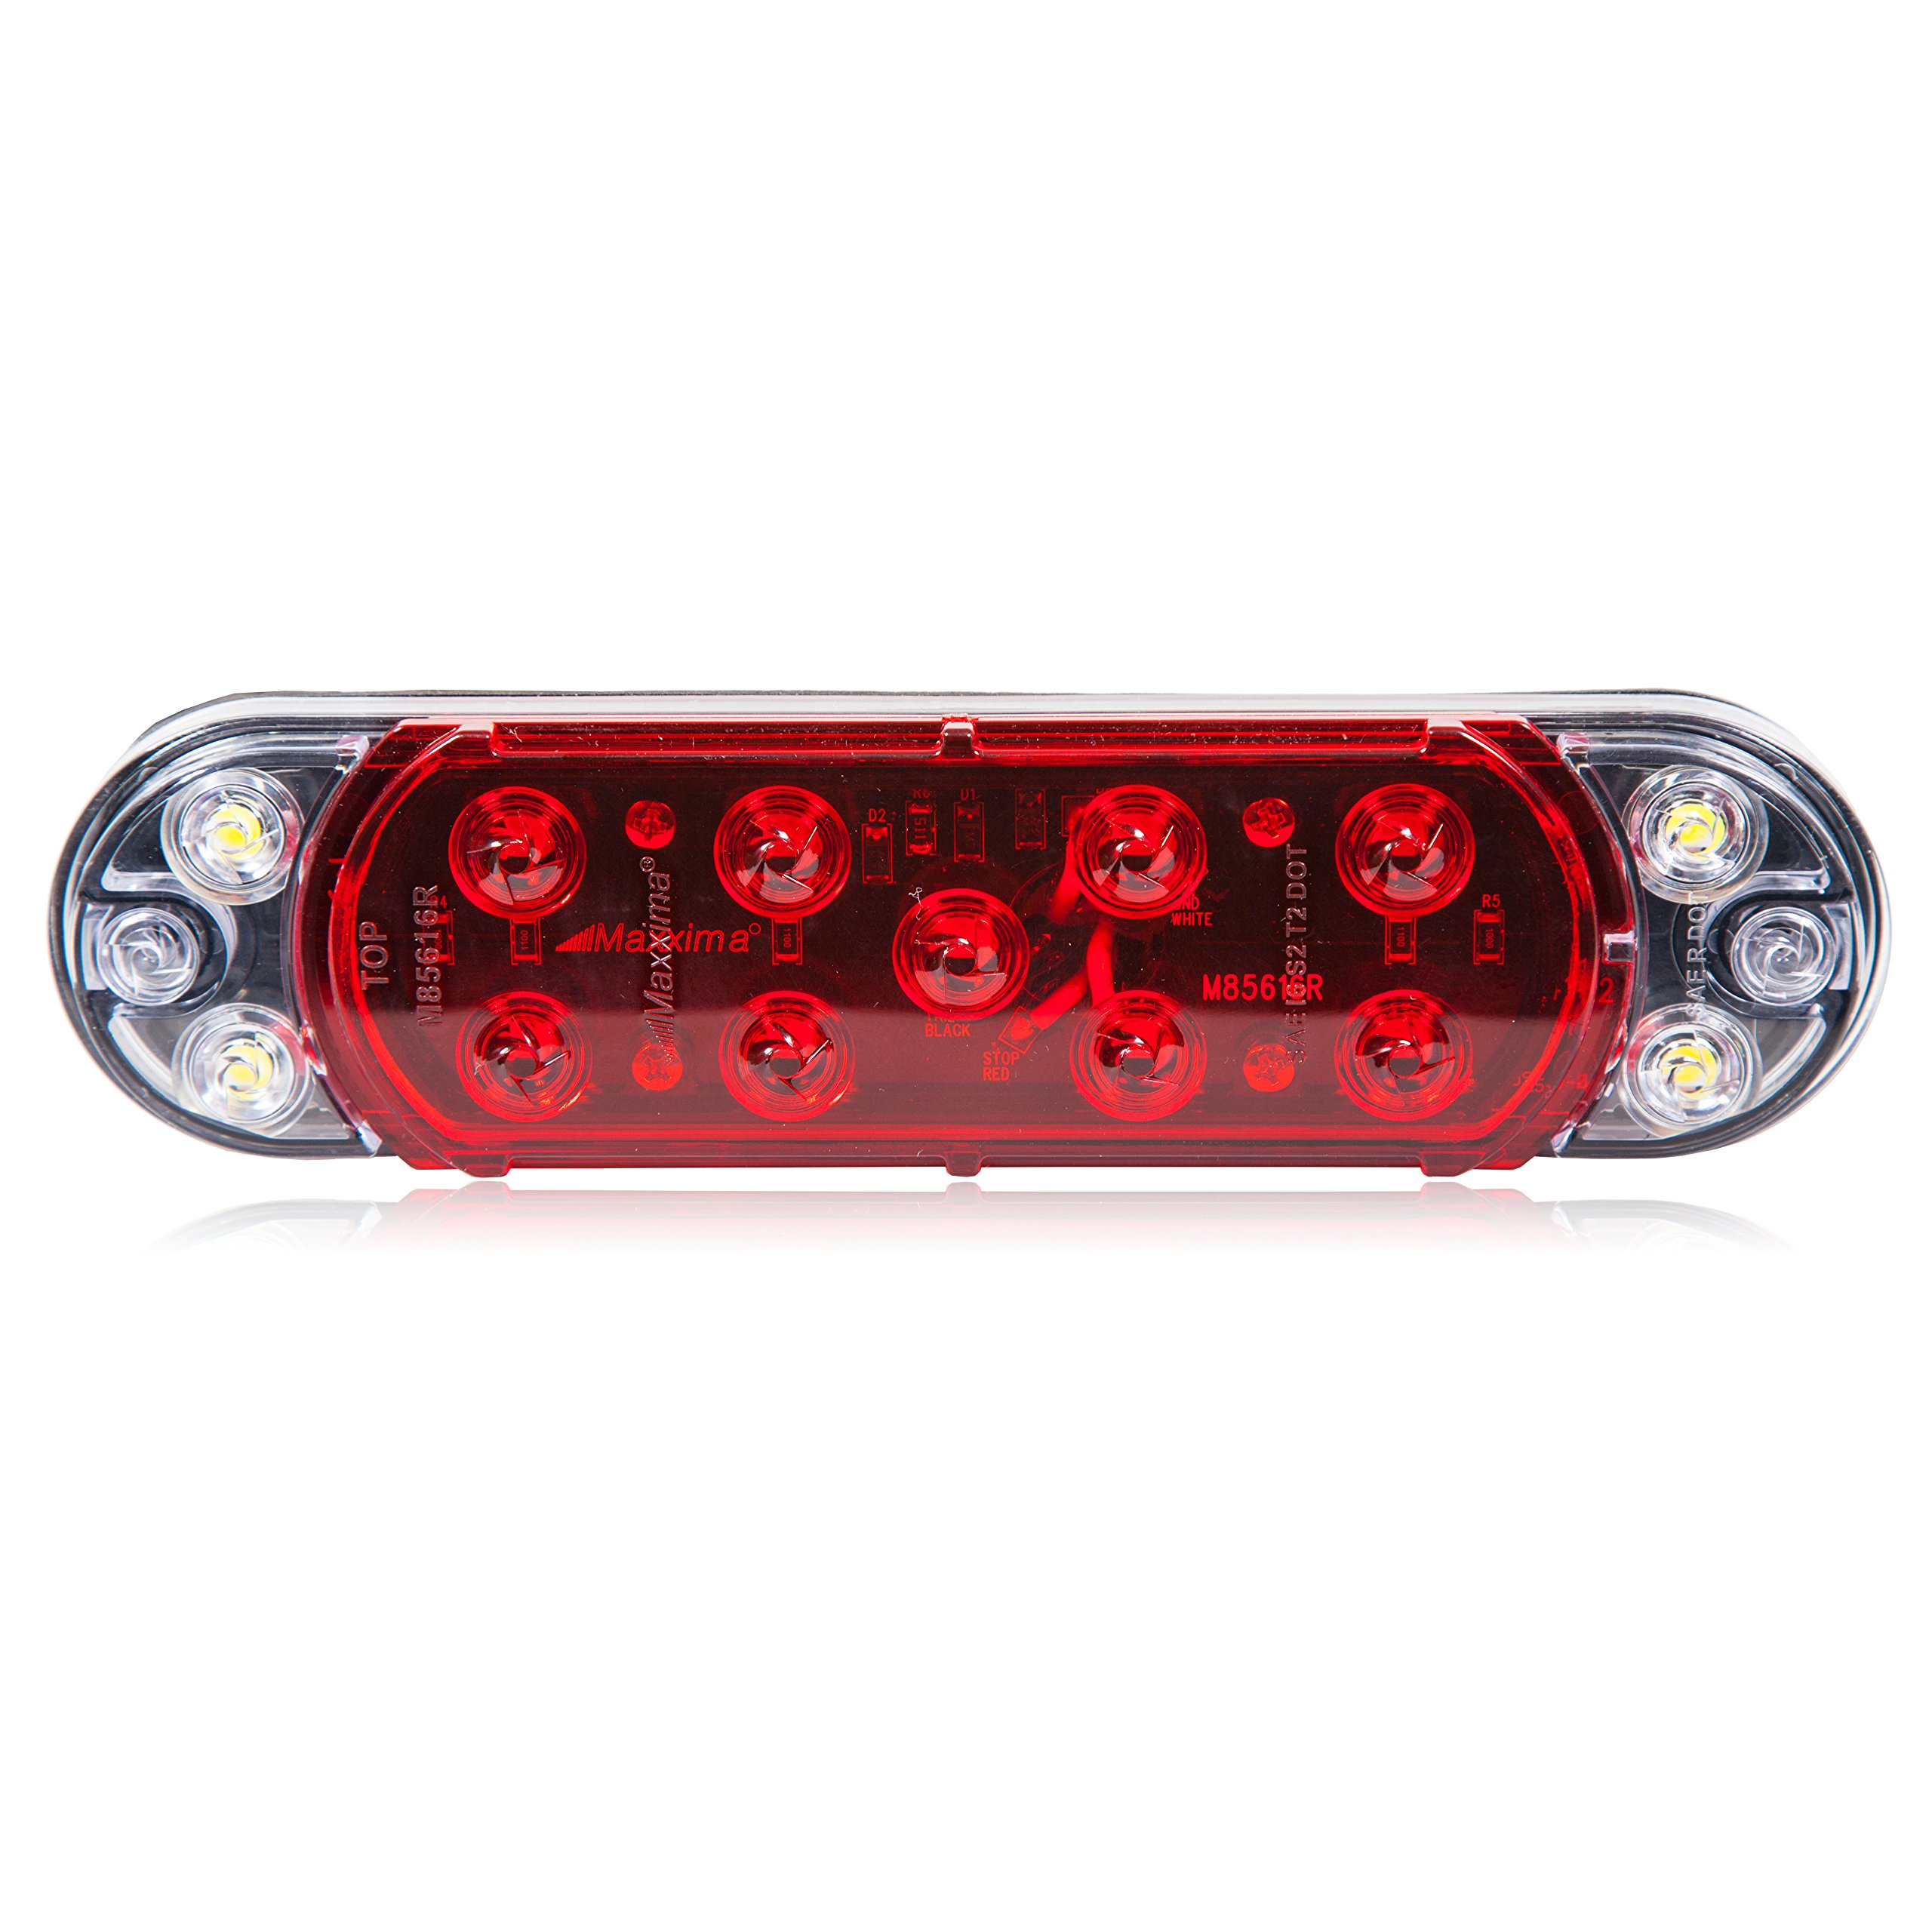 Maxxima M85616R Red/White Hybrid LightningS LED Oval Stop/Tail/Rear Turn and Back-Up LED Light